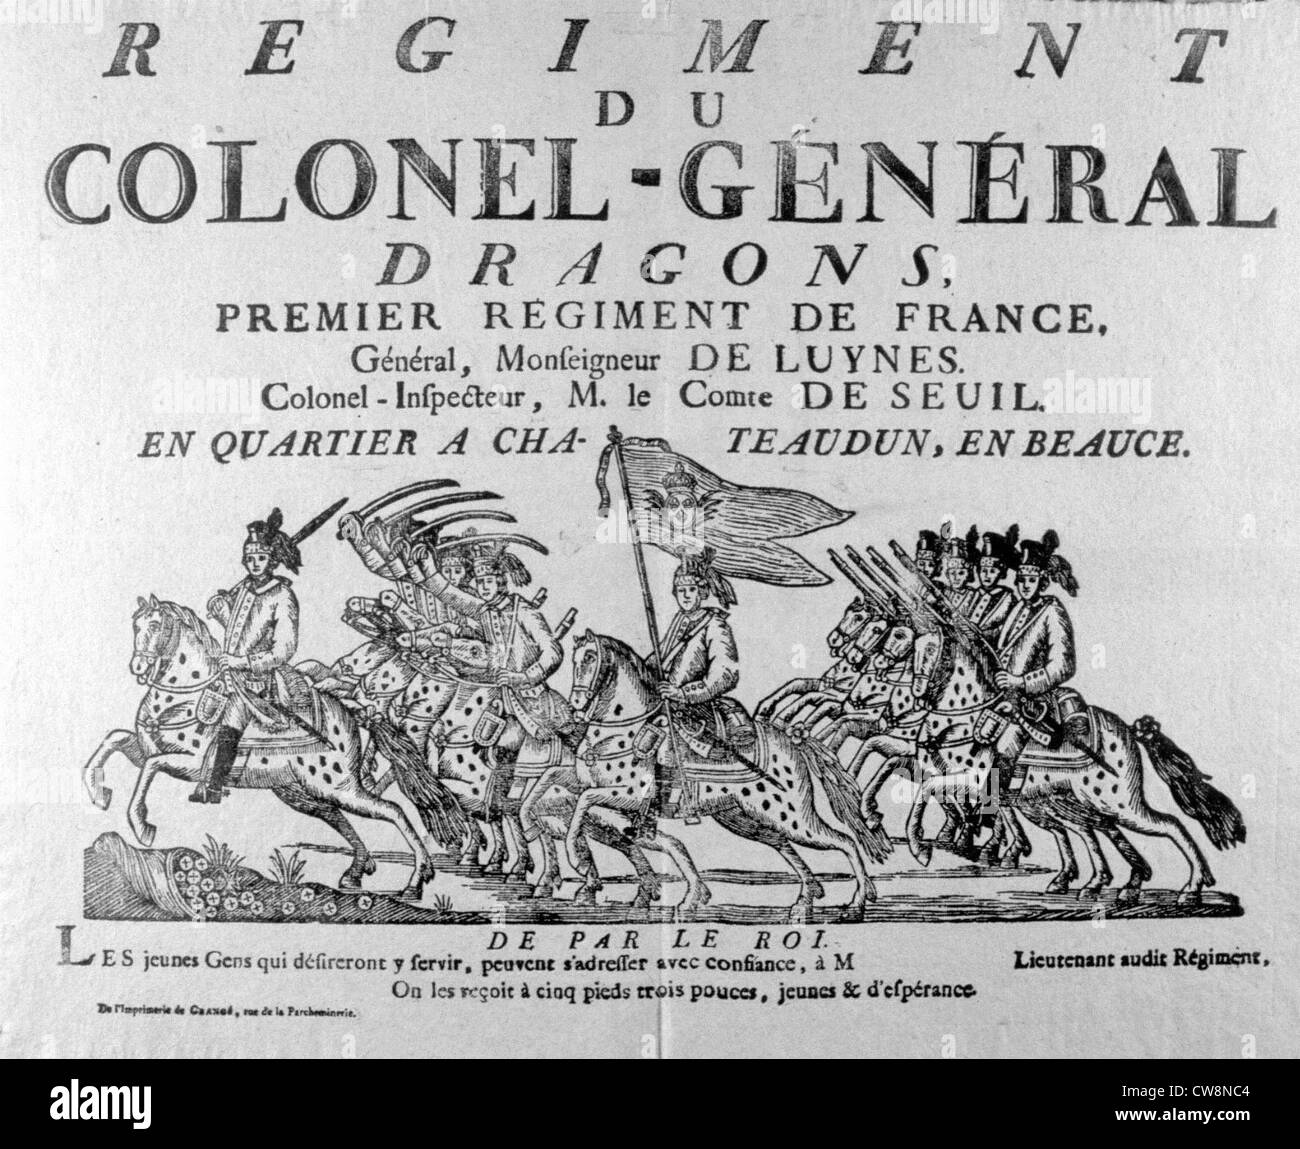 Army, advertisement from the 17th century for enrollment in a regiment - Stock Image